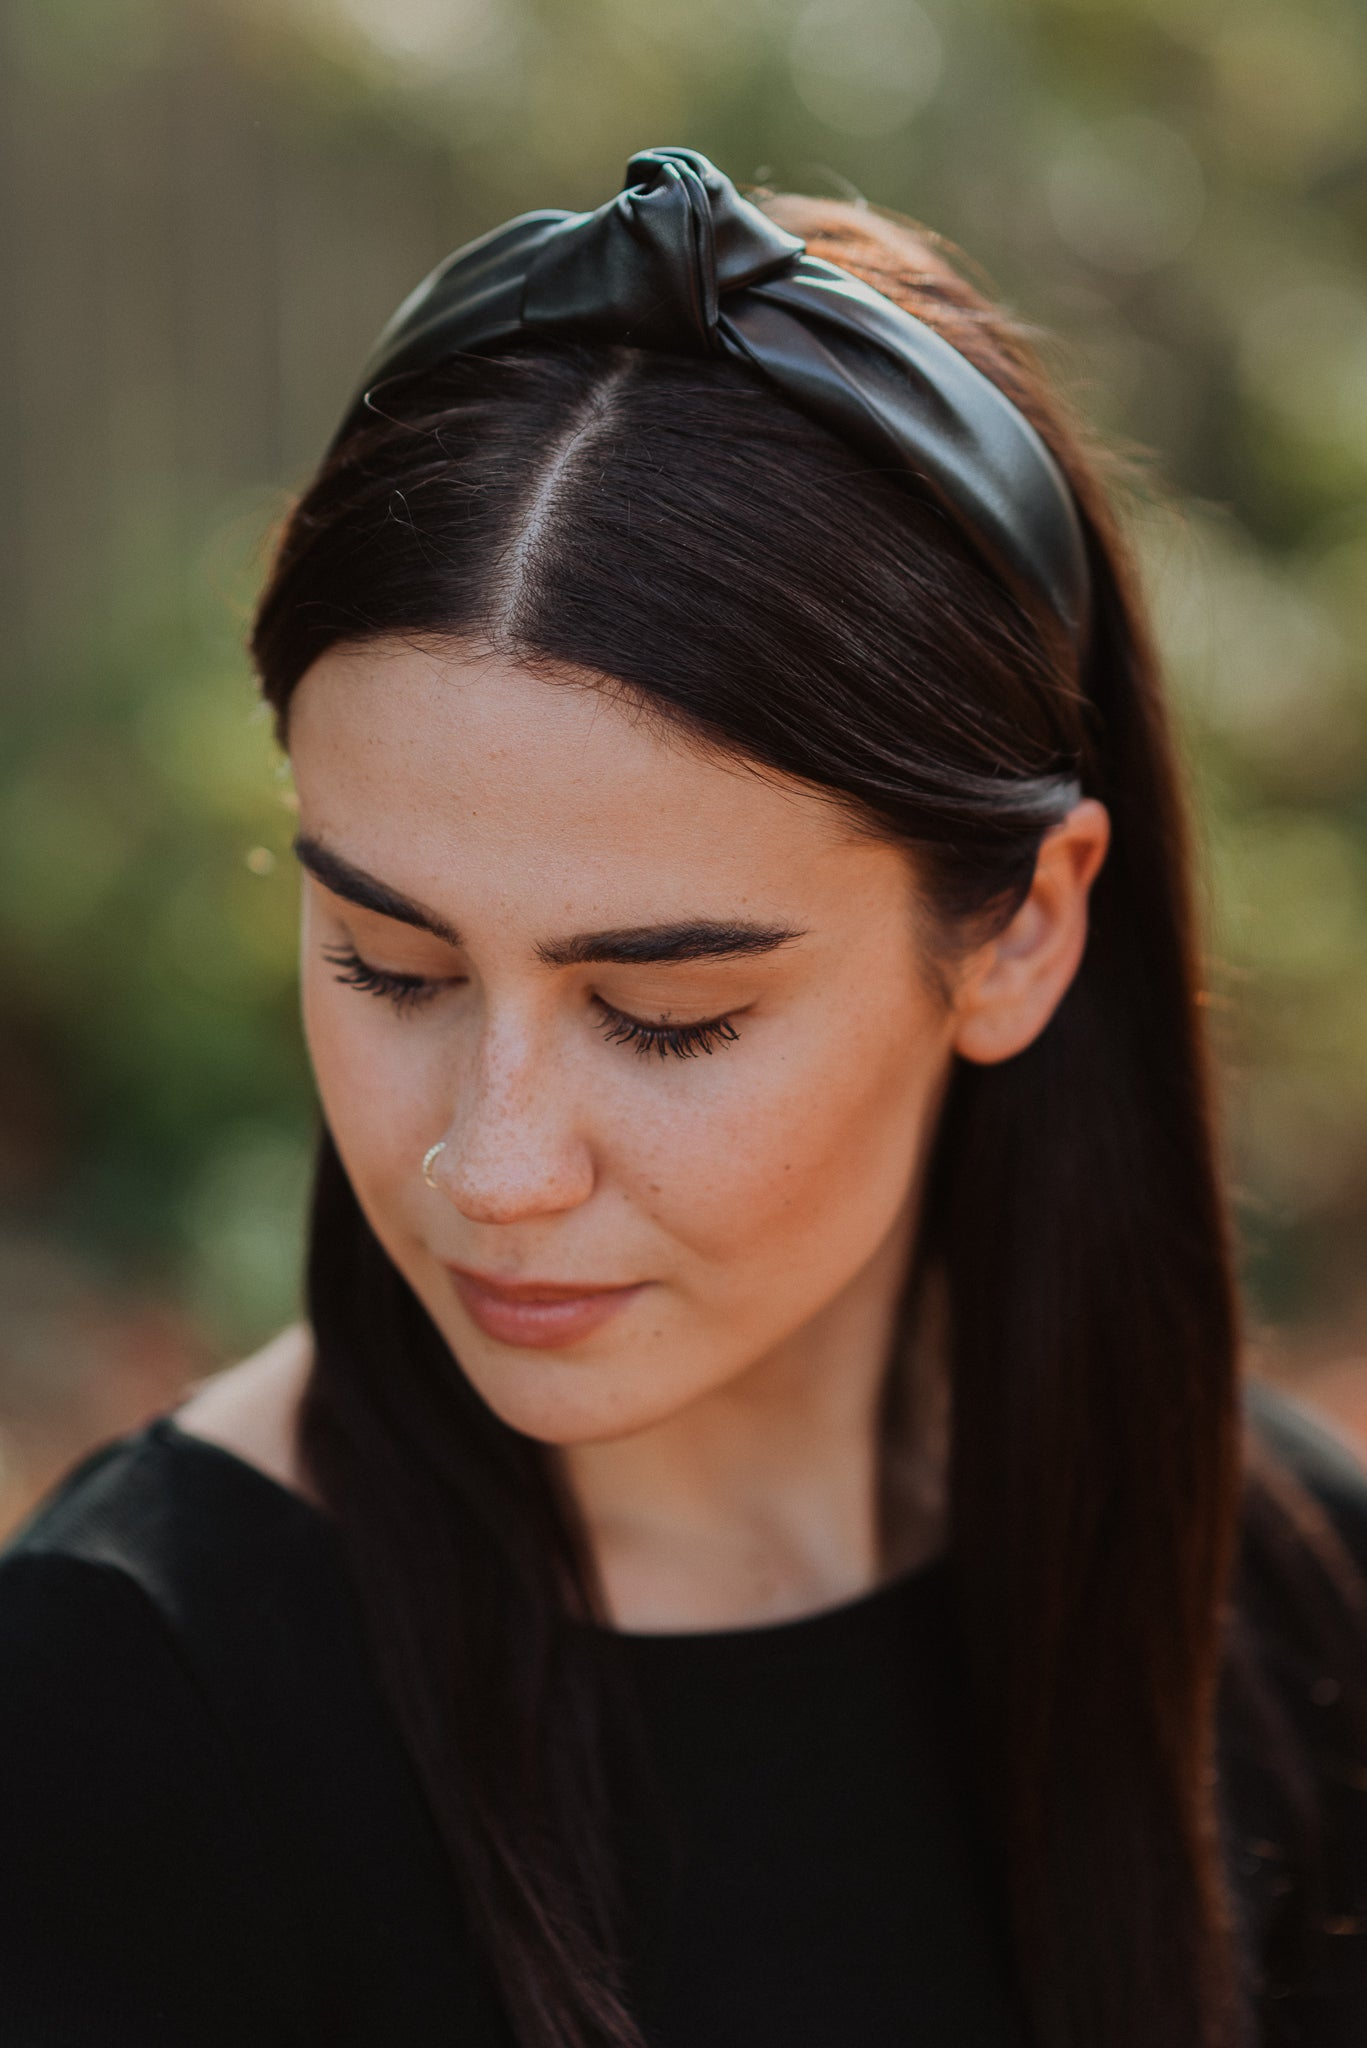 What's Not To Like Faux Leather Headband in Black